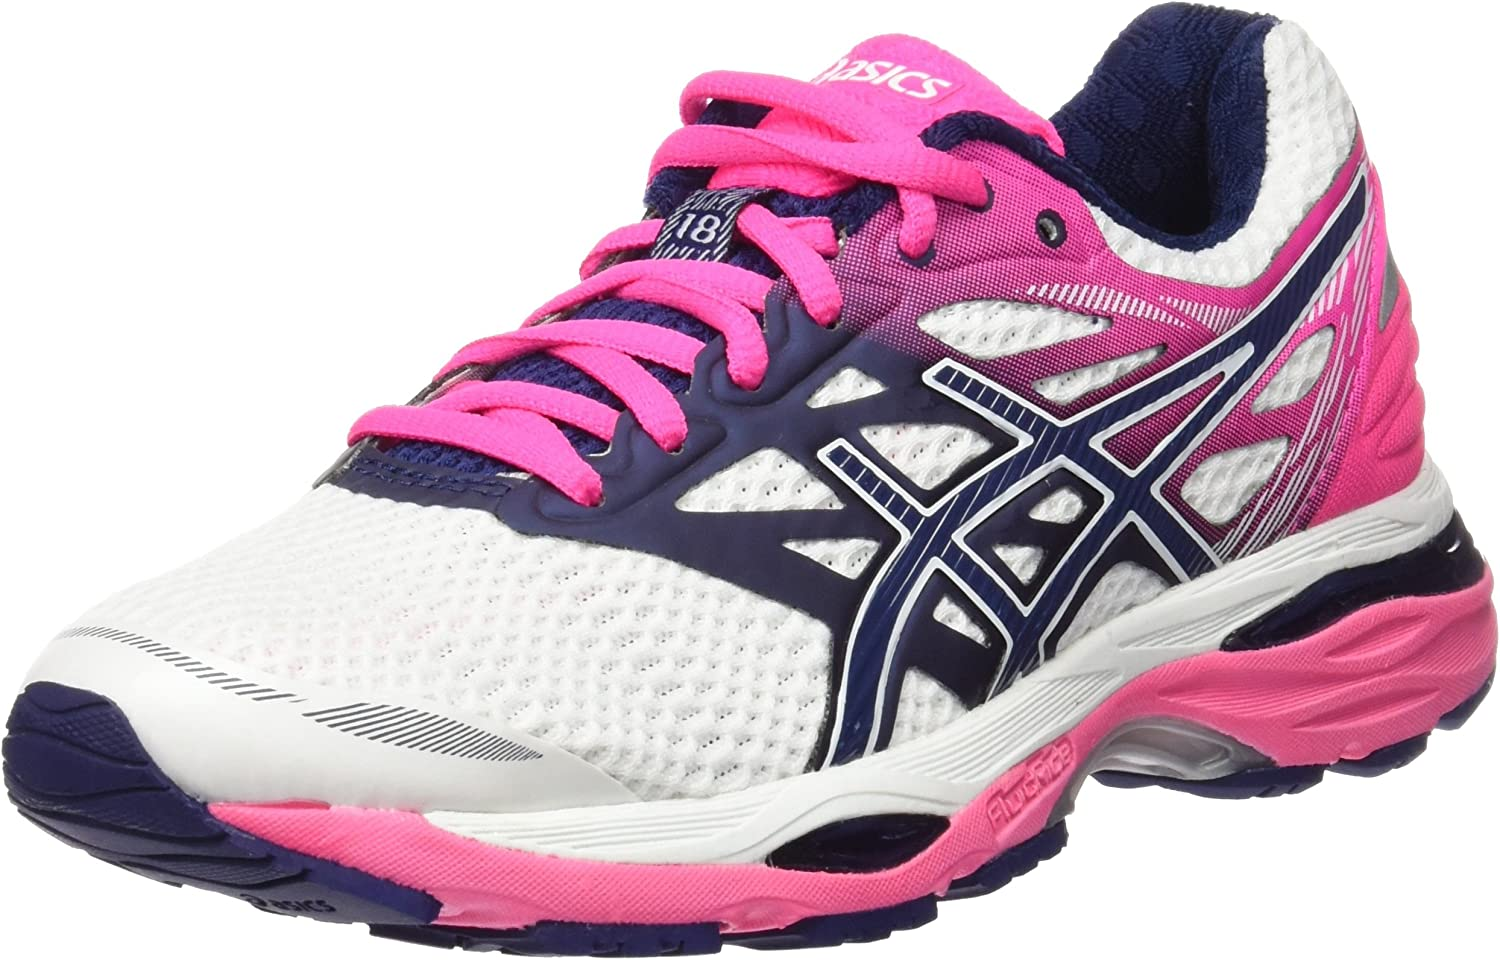 ASICS T6C8N0149, Zapatillas de Running para Mujer, Blanco (White / Indigo Blue / Hot Pink), 41.5 EU: Amazon.es: Zapatos y complementos